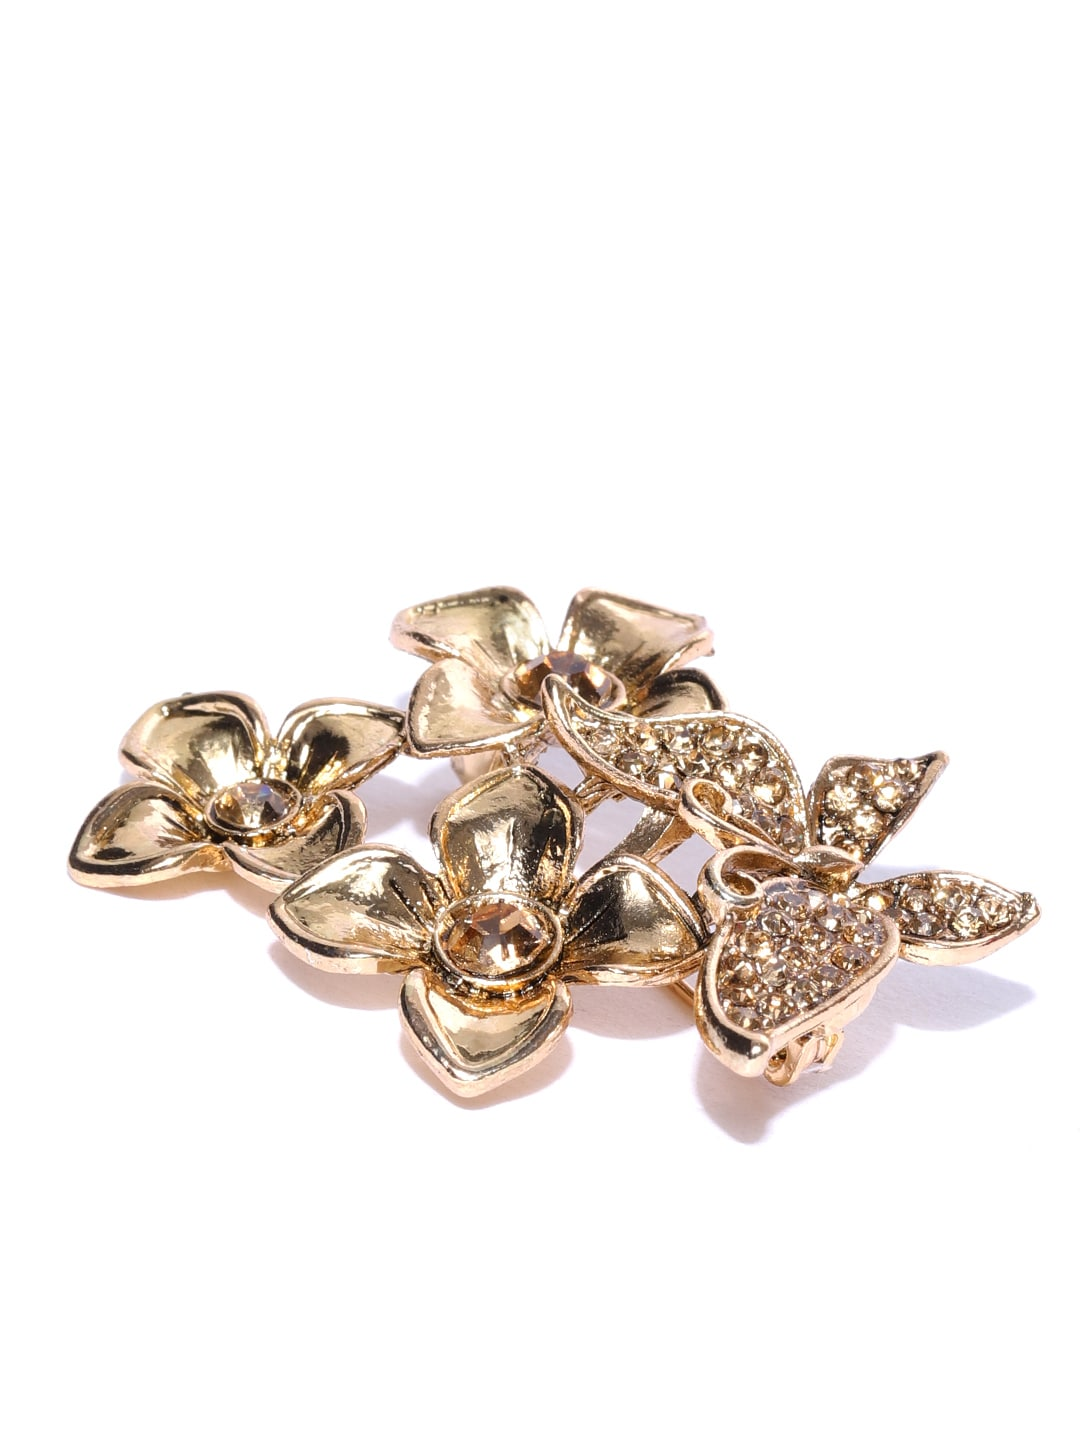 7ed05c5b130 Women Accessories Brooch - Buy Women Accessories Brooch online in India